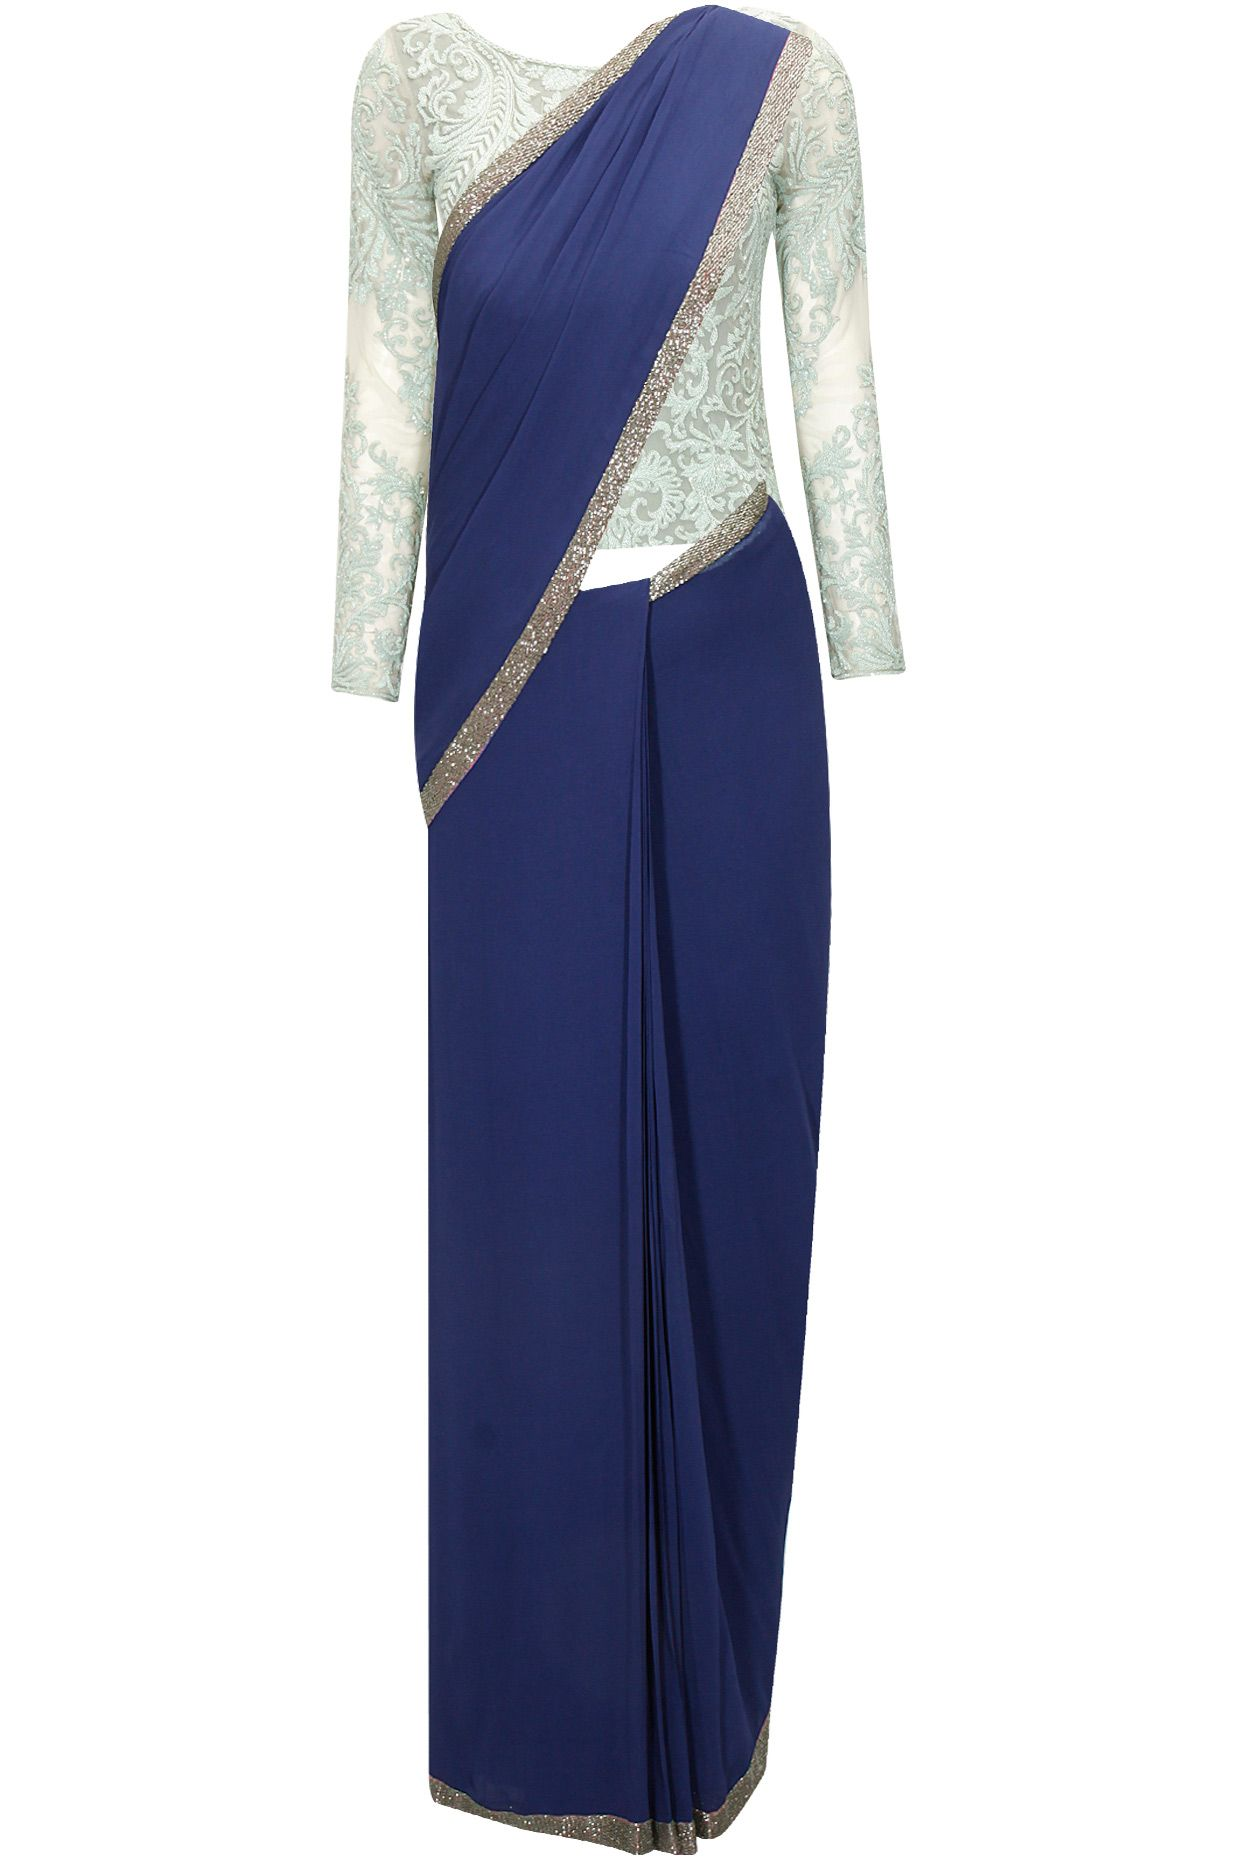 70079a7df95 Navy pre-stitched sari gown with duck egg blue embroidered blouse by Varun  Bahl.